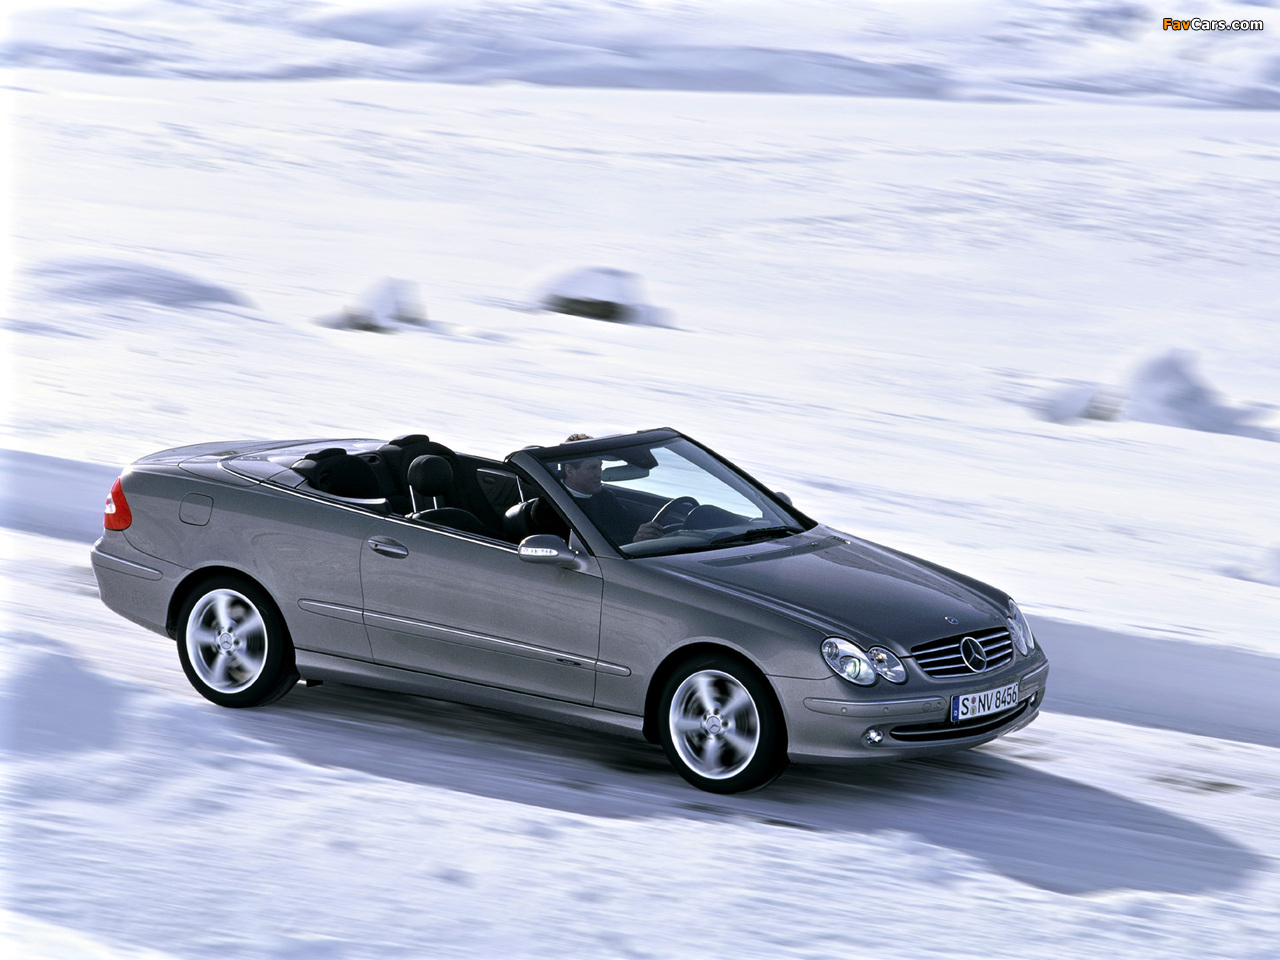 Pictures Of Mercedes Benz Clk 500 Cabrio A209 2003 05